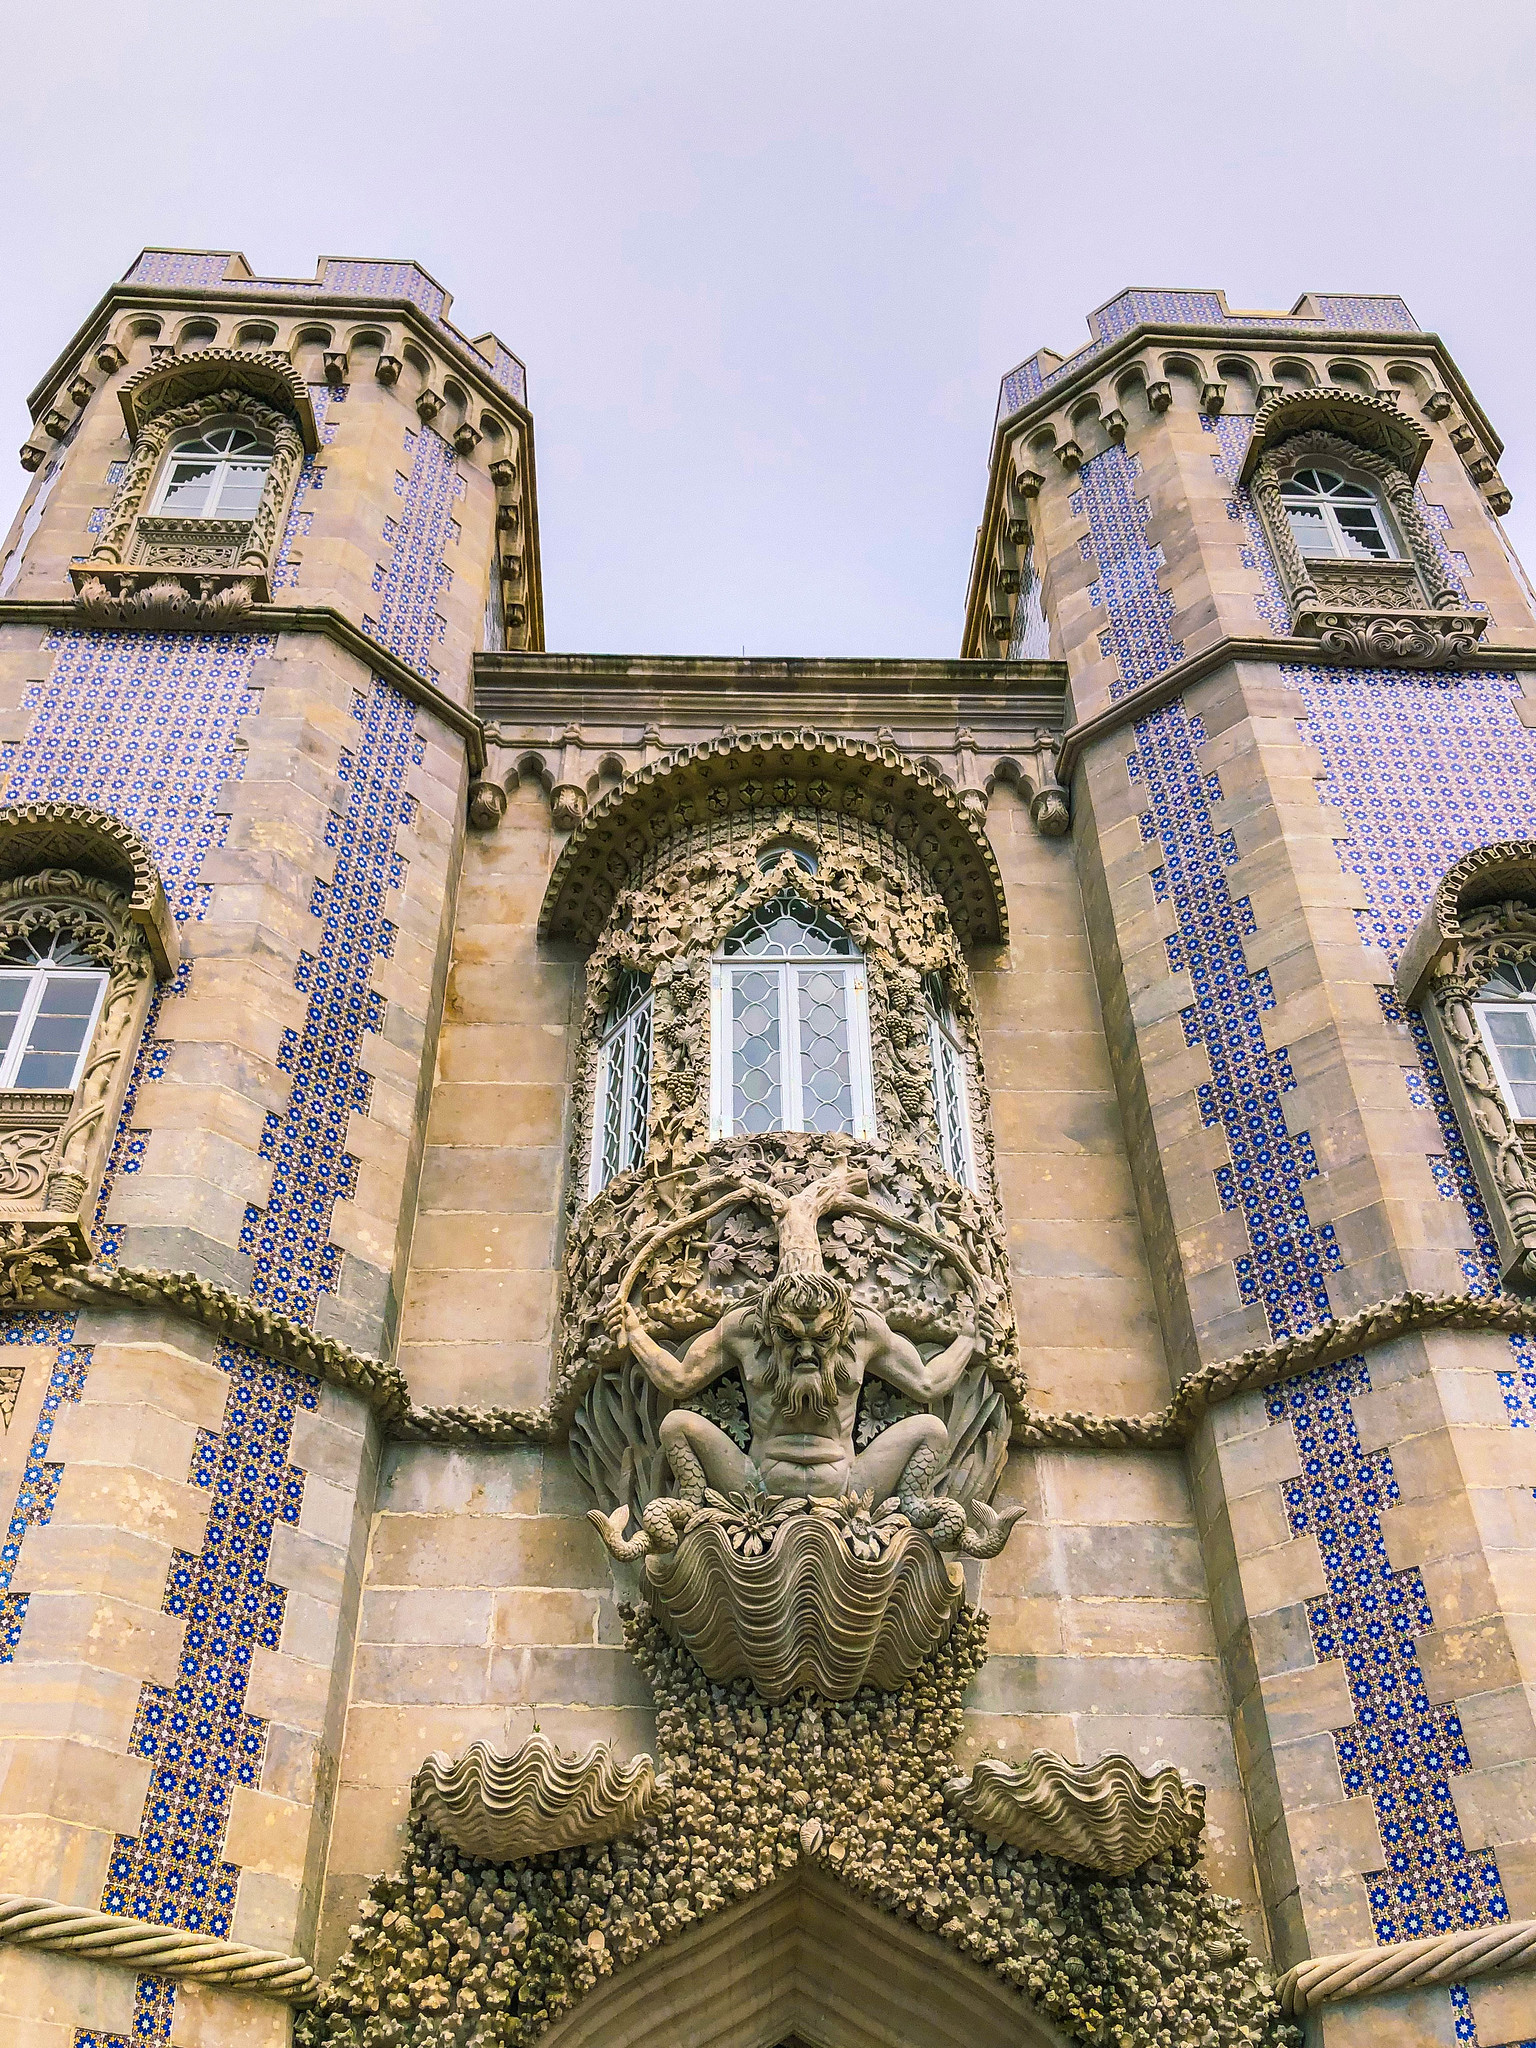 The Ultimate Self Guided Tour of Pena Palace, The Best Day Trip from Lisbon